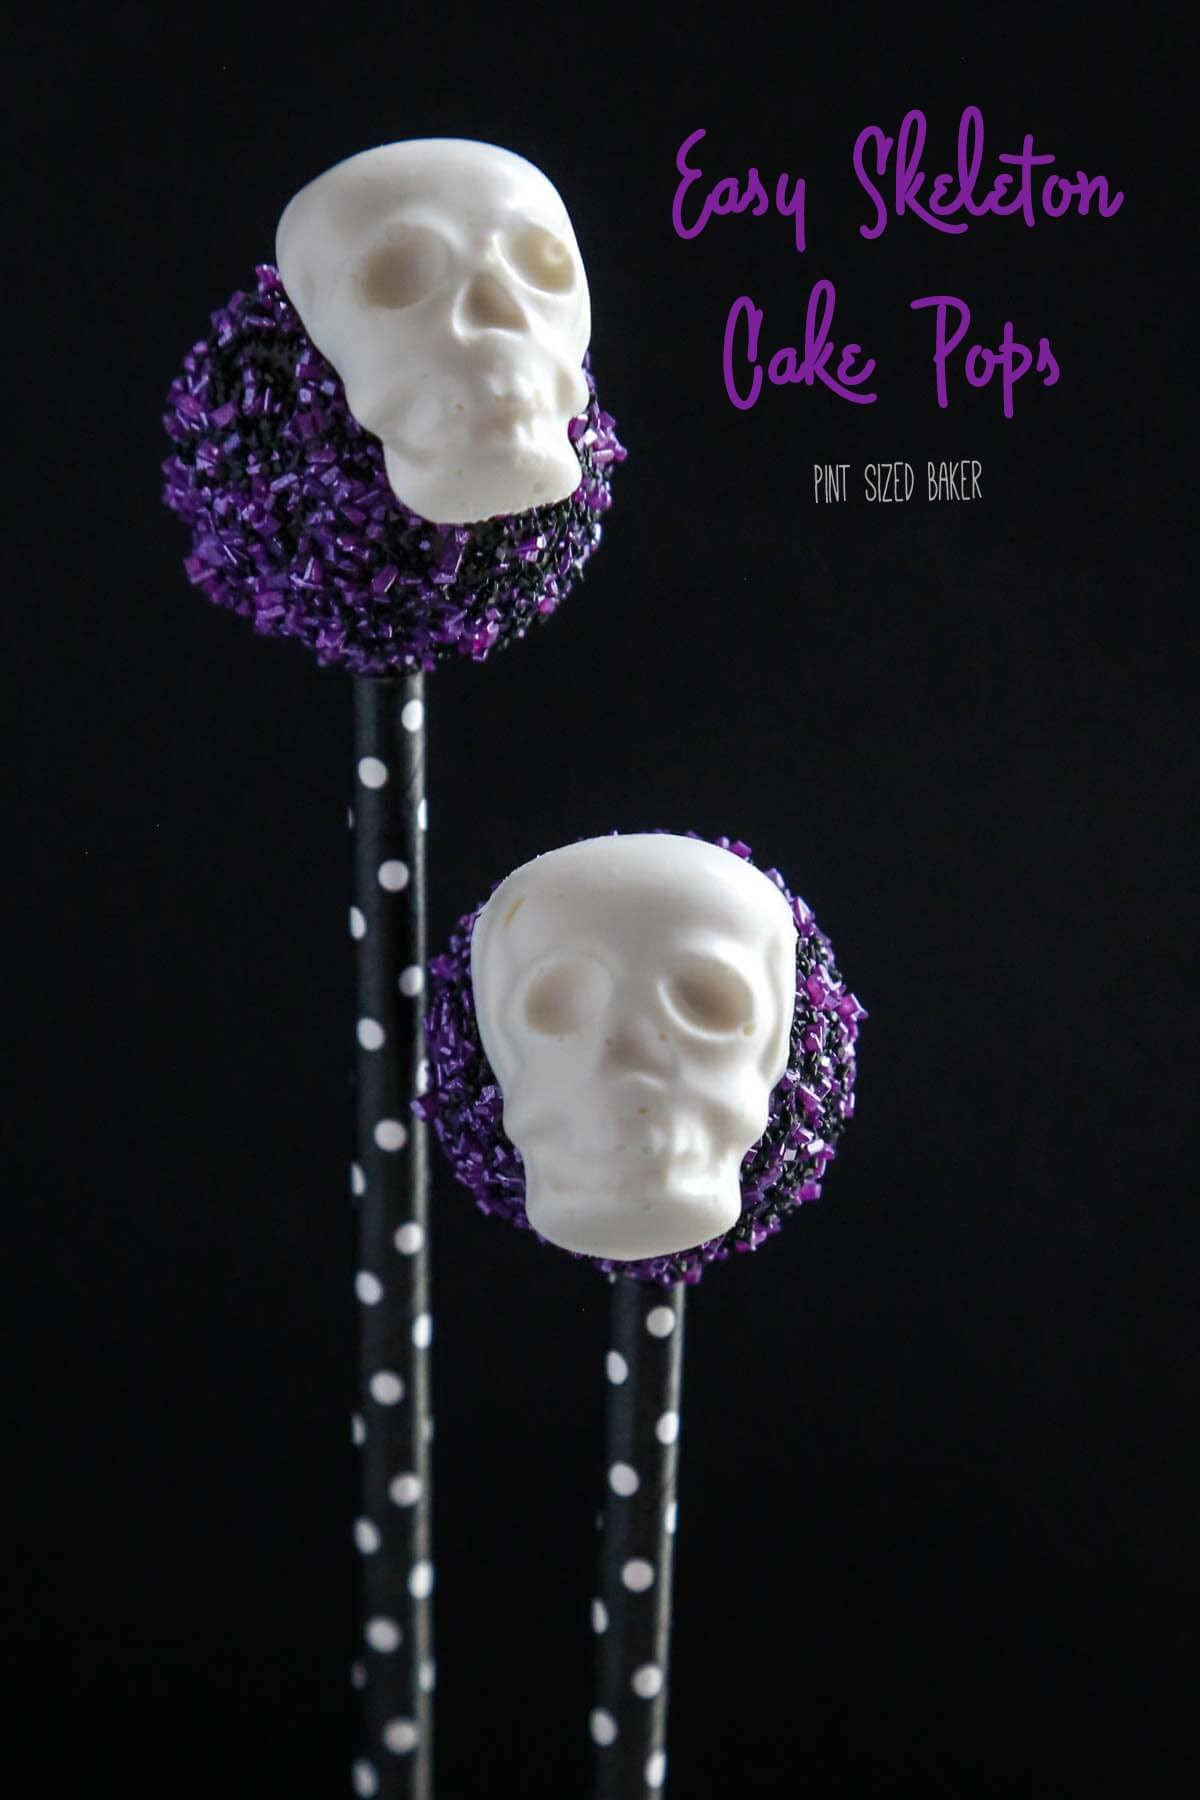 Super Easy Skeleton Cake Pops are perfect to make foryou Halloween party dessert table. Skulls and bones make for a spooky and sweet treat.